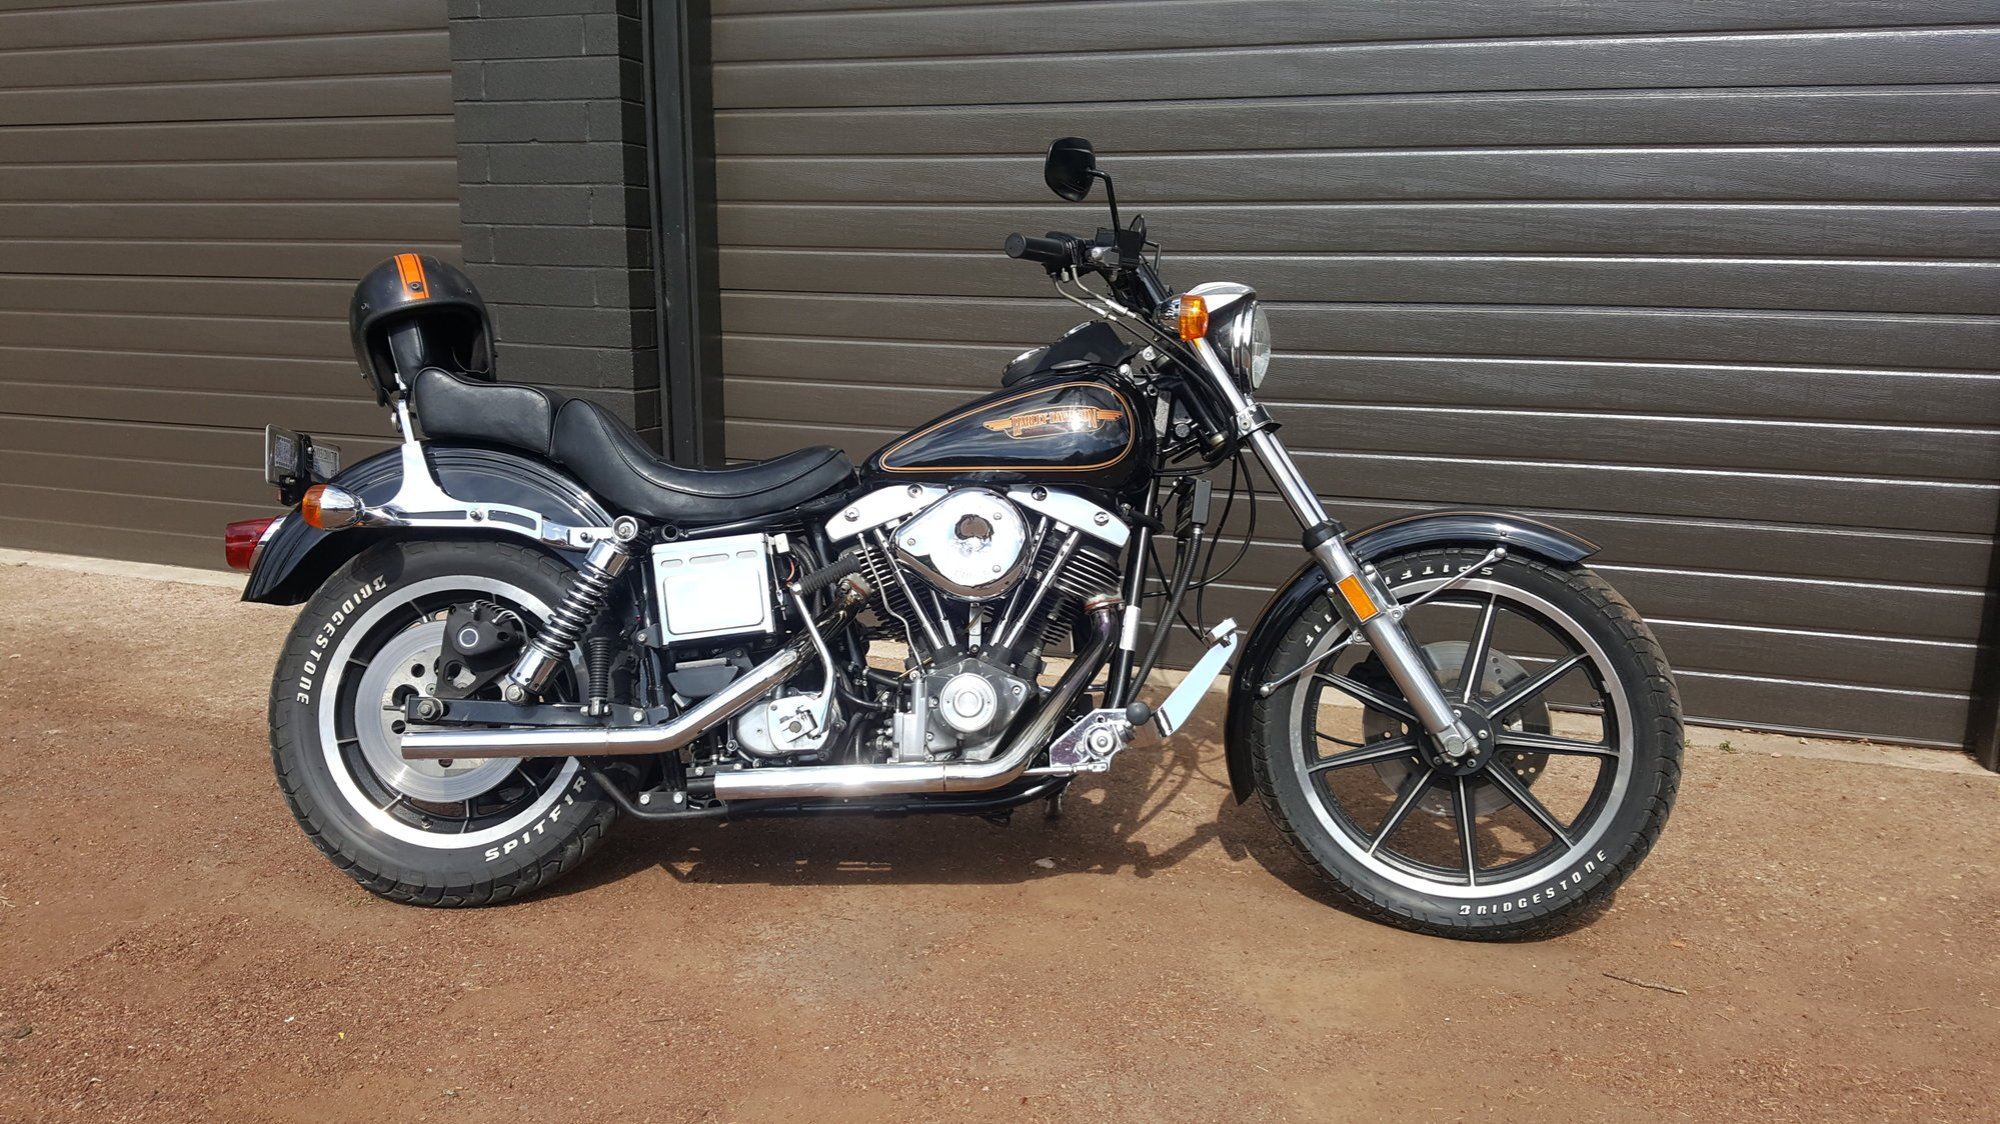 hight resolution of i want to be able to start the bike via kicker can anyone please advise the best ignition to do this btw i m in new zealand so i ll need to purchase via